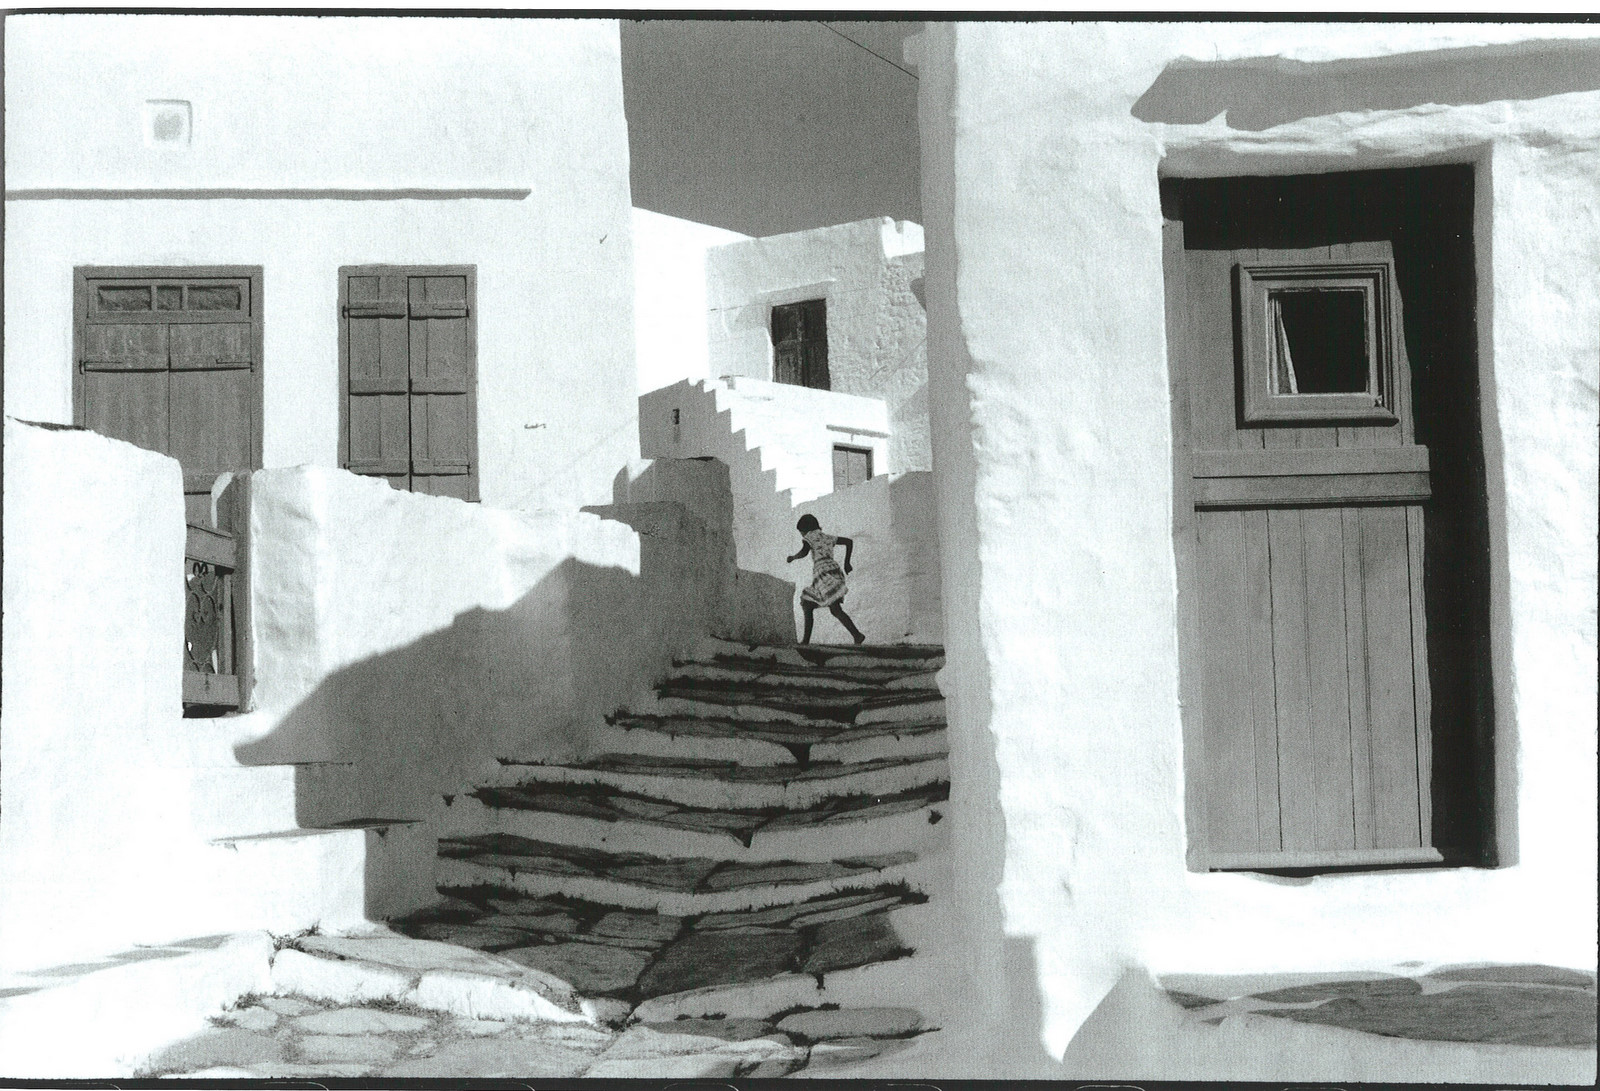 cyclades-island-of-siphnos-greece-19611